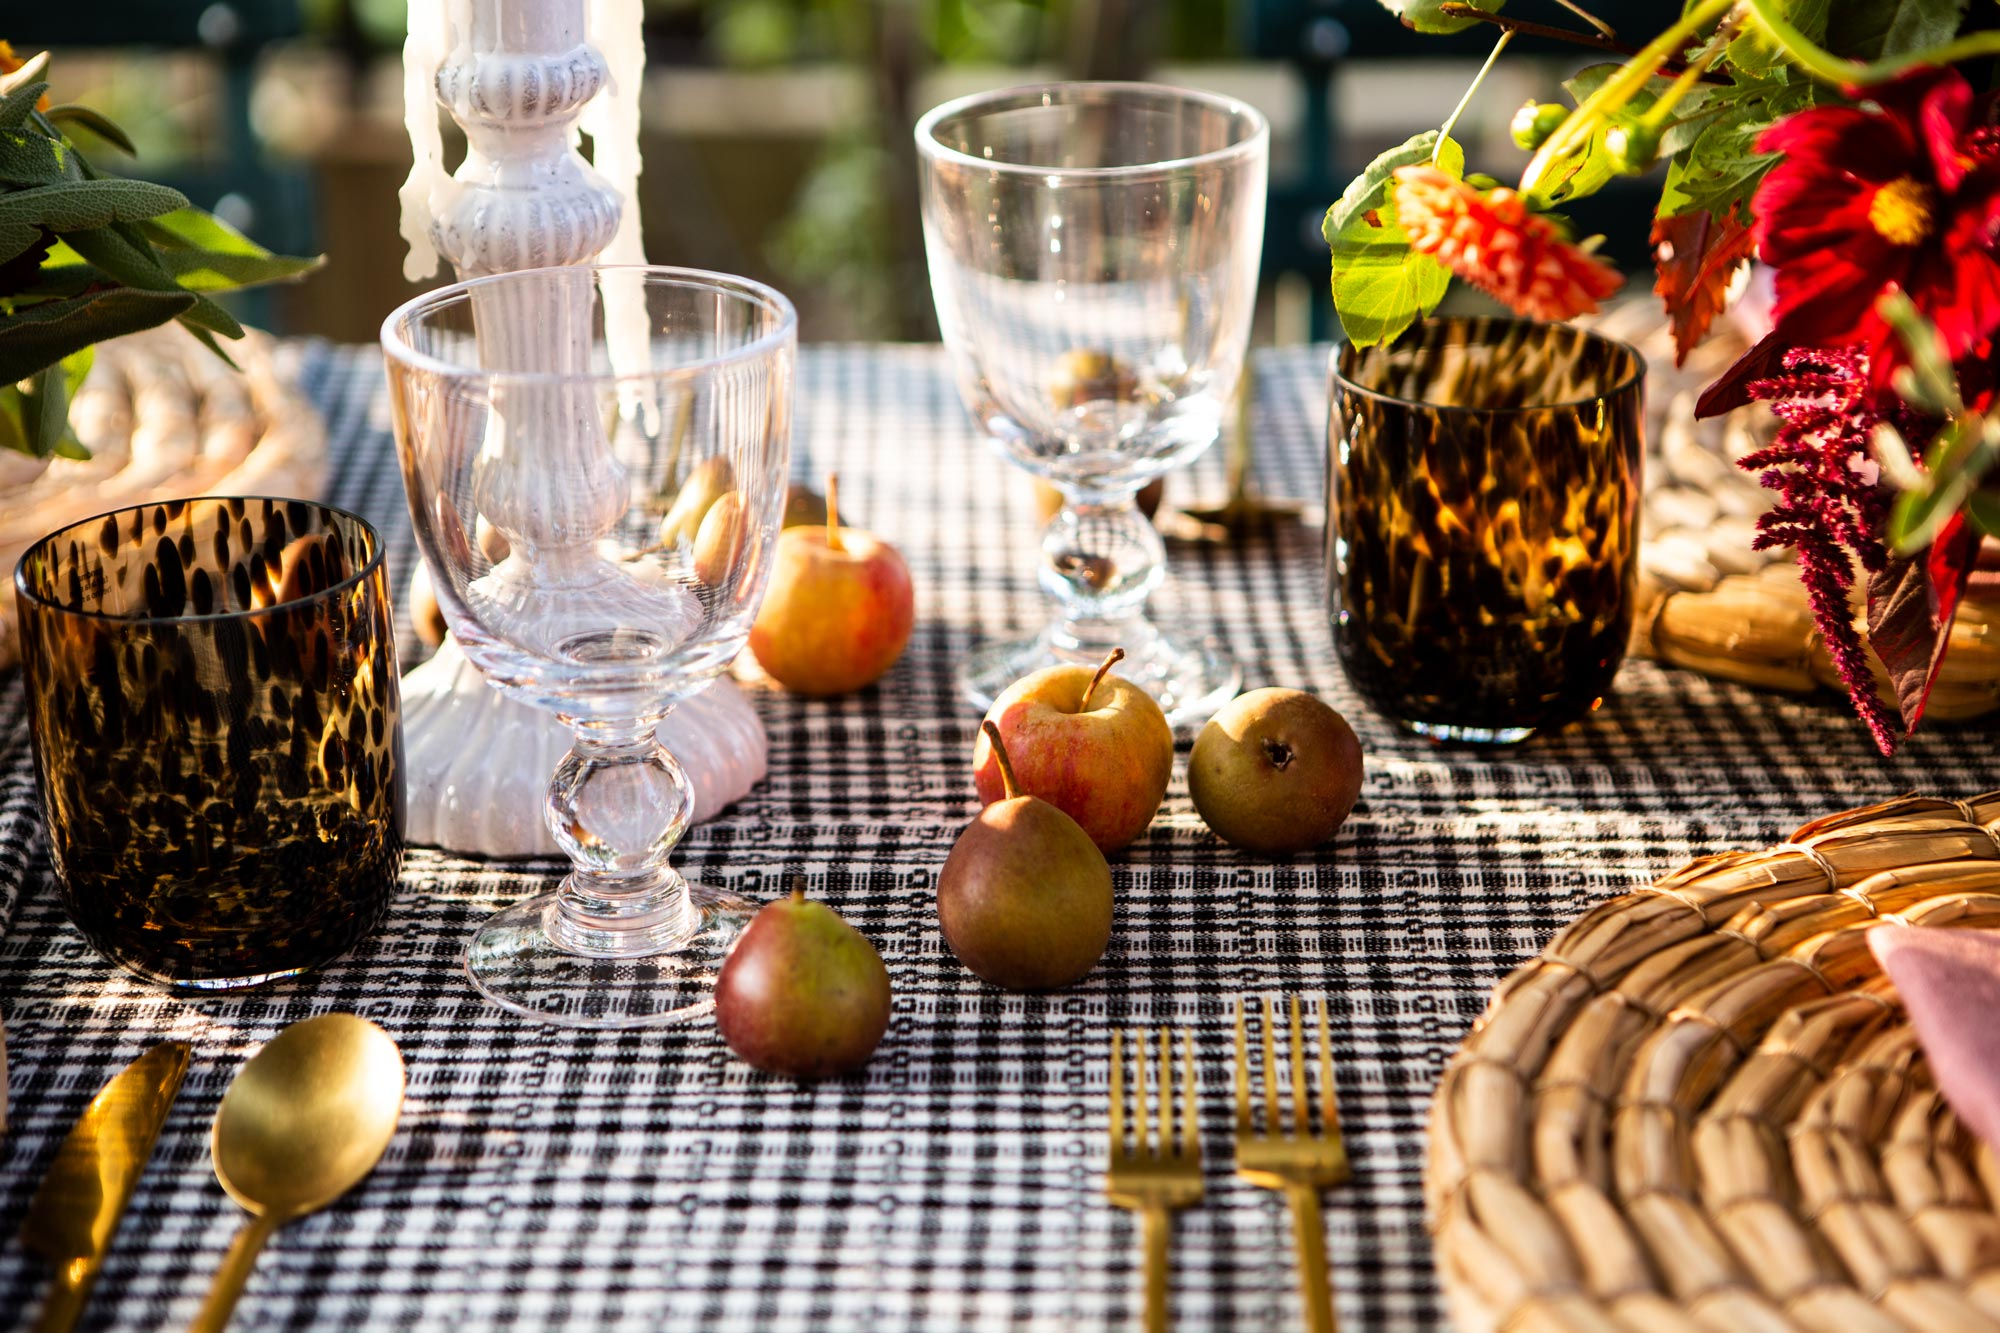 Dinner is about to be served: Sur La Table napkins and seagrass place mats top a Heather Taylor Home tablecloth; they're surrounded by Williams Sonoma wineglasses, and CB2 tortoiseshell tumblers and gold flatware.